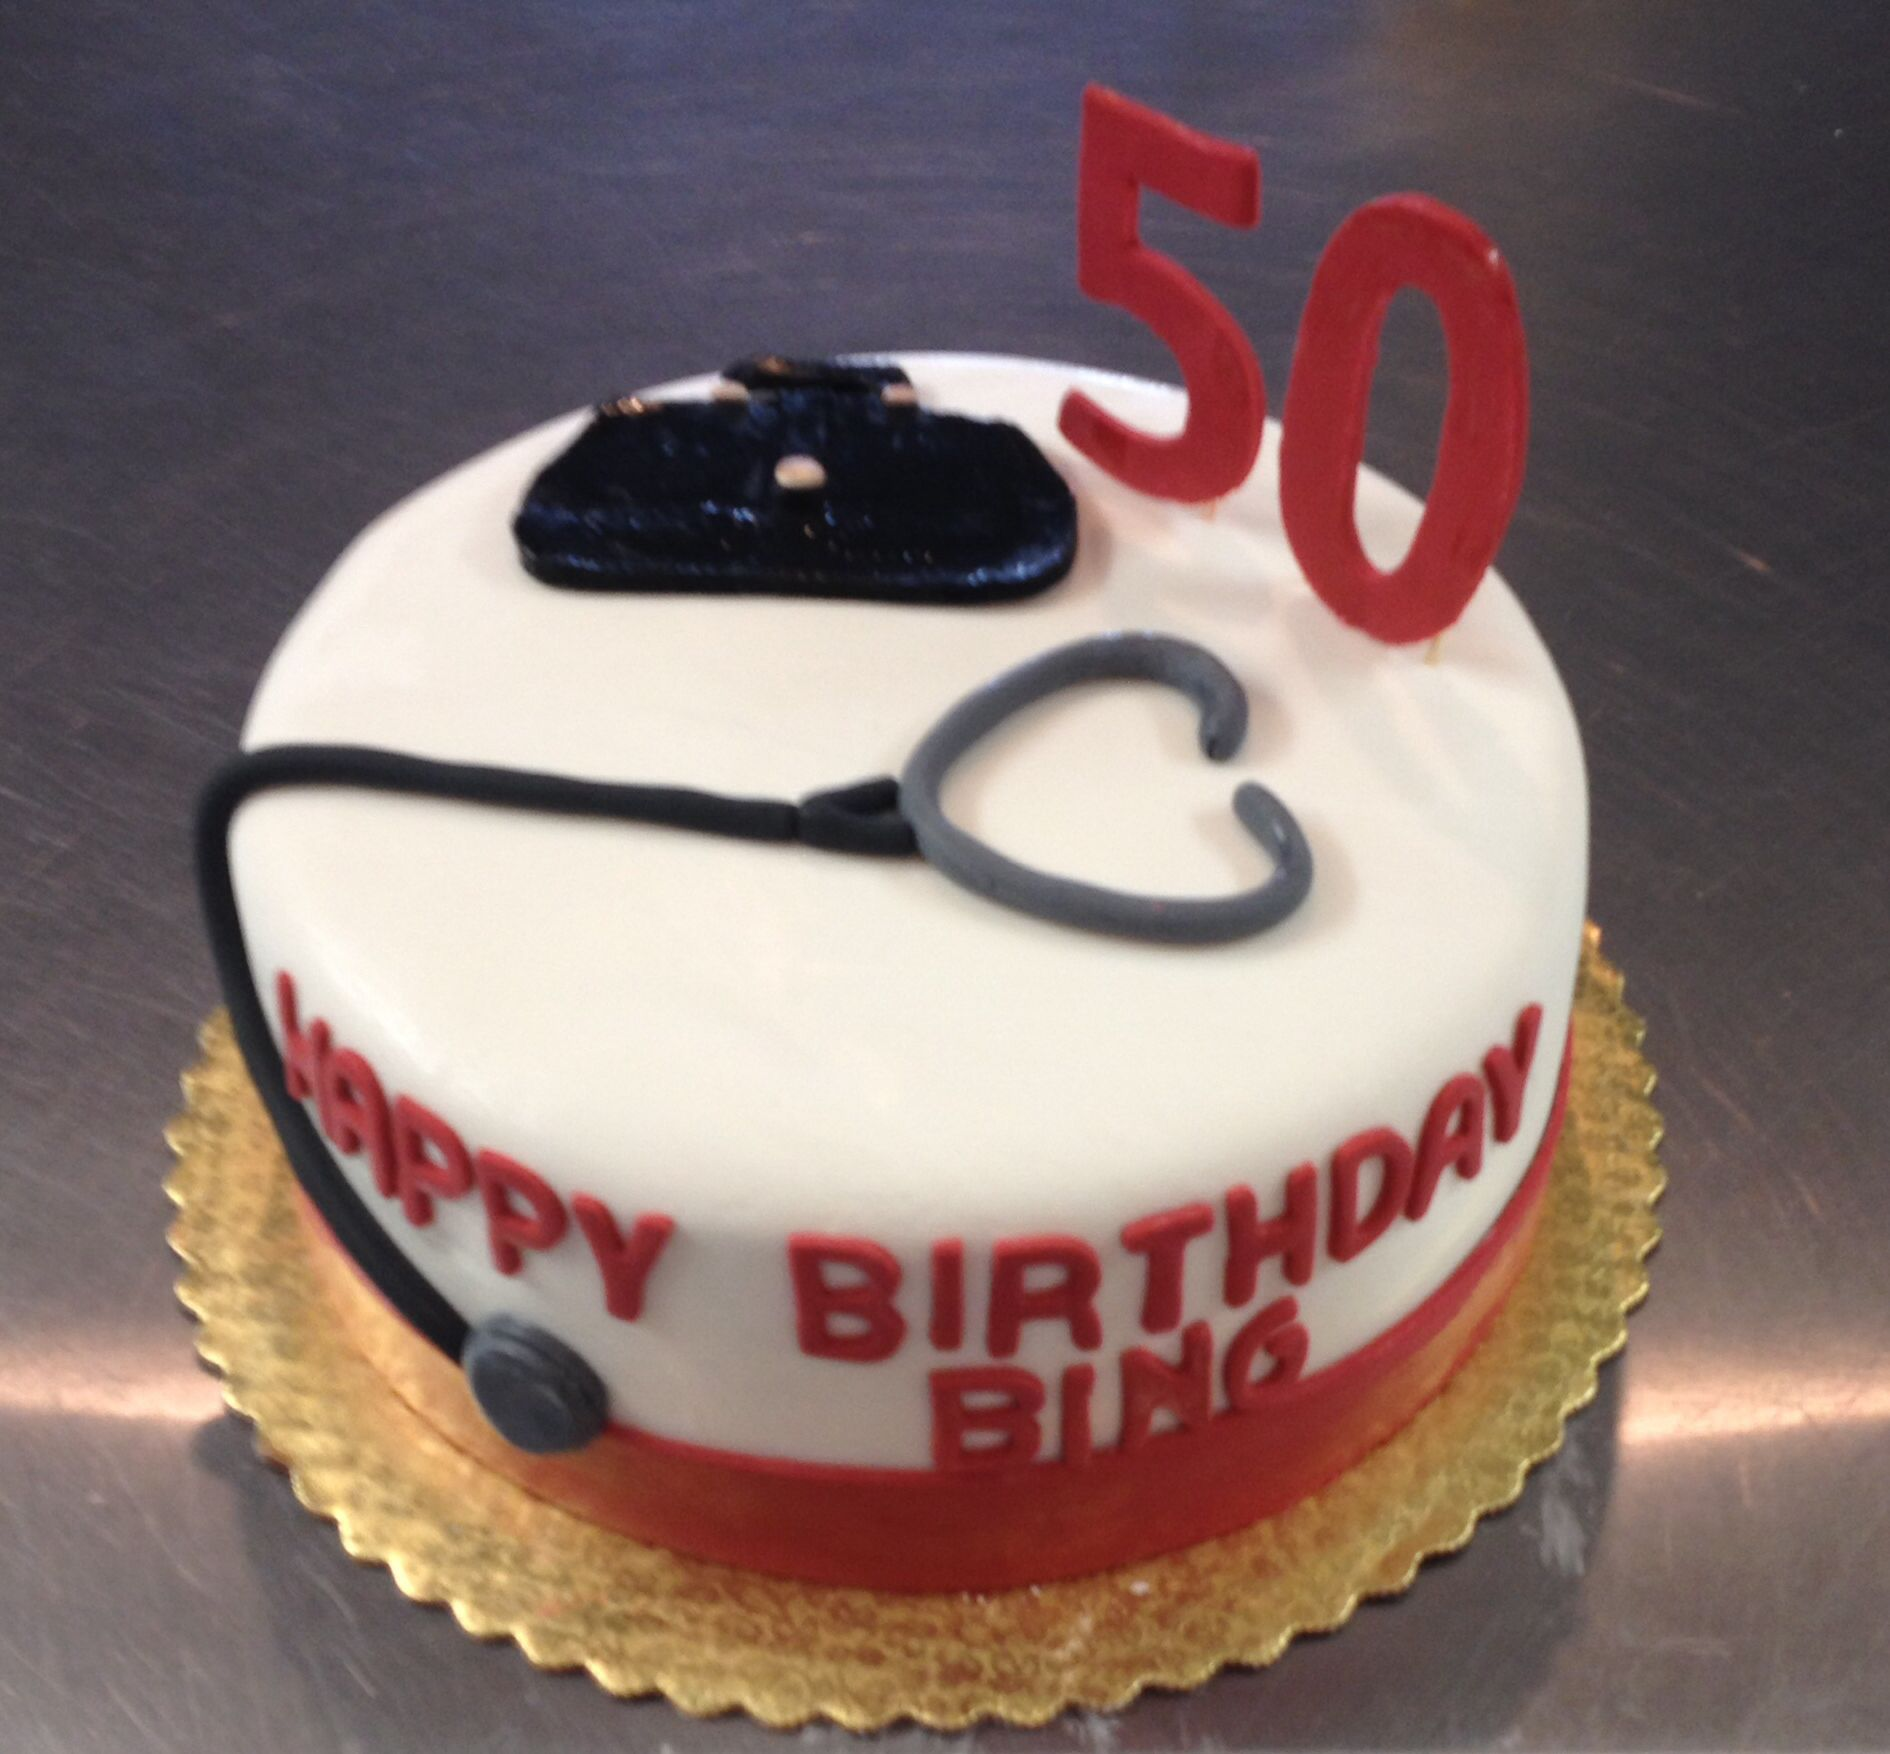 50th birthday cake customized for a doctor Cake Art Pinterest